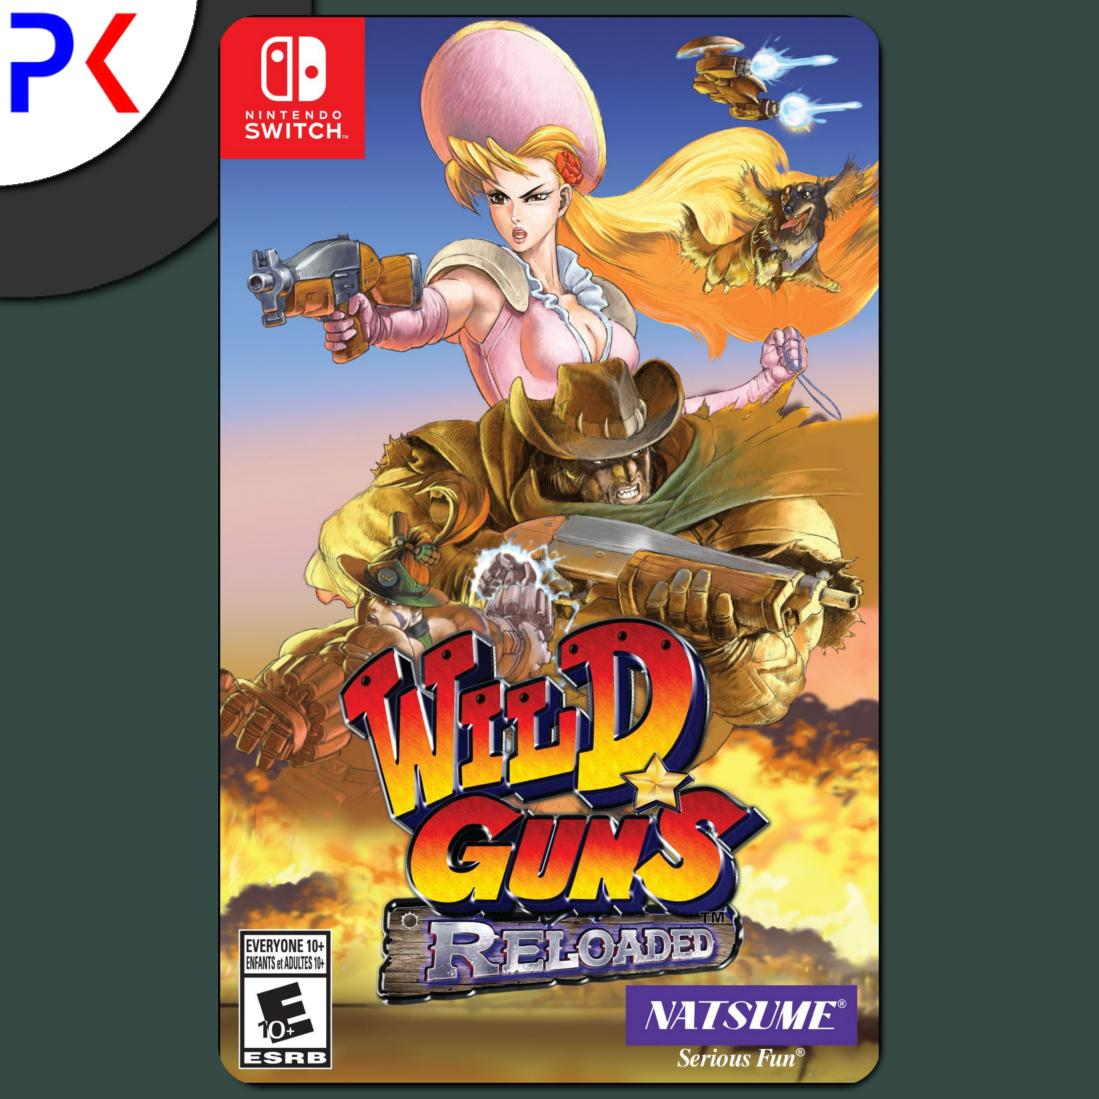 Compare Nintendo Switch Bayonetta 2 Us Price In Singapore Online Overcooked English Pal Games Wild Guns Reloaded